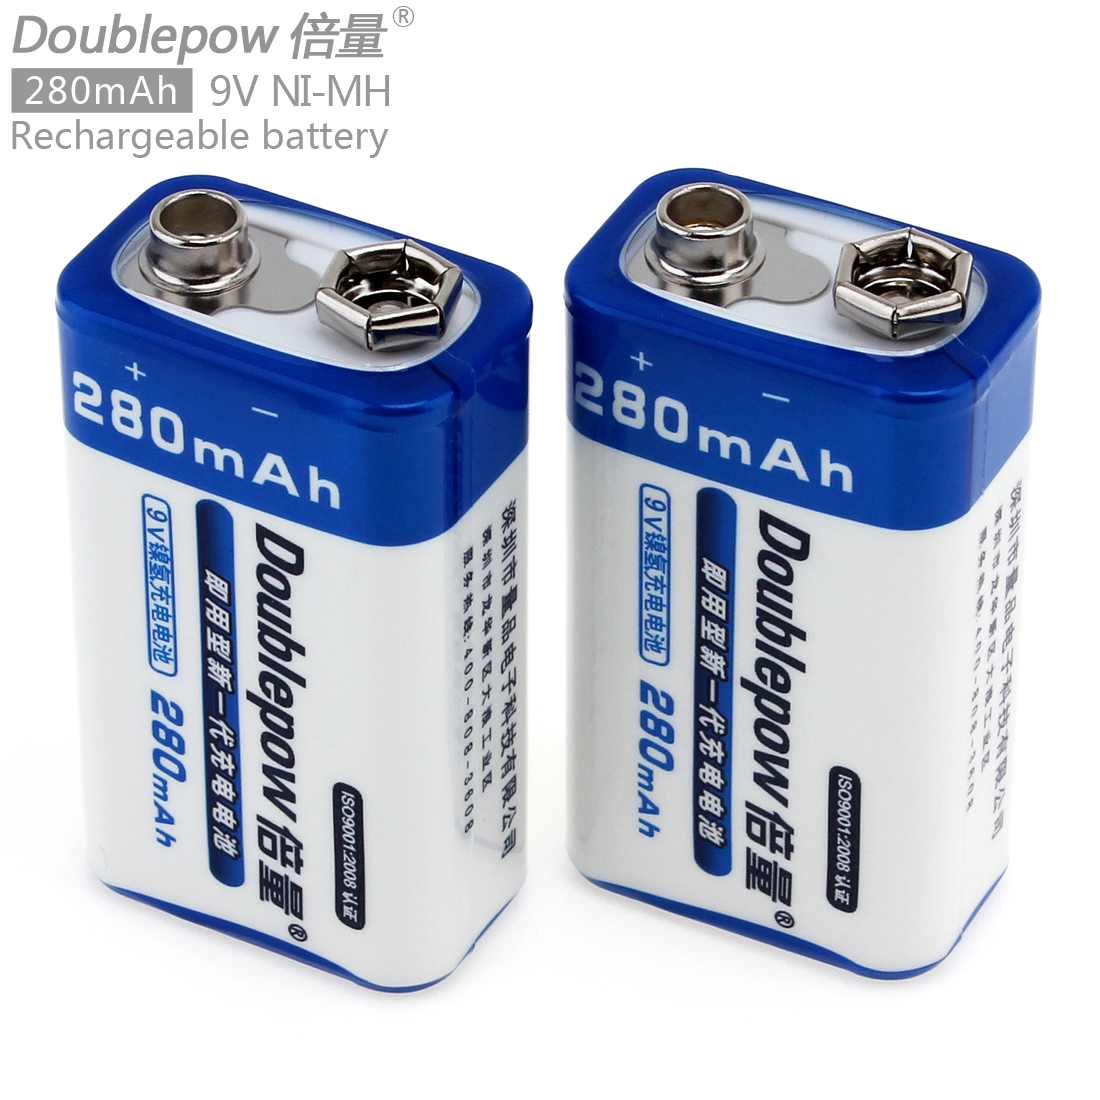 2pcs doublepow 9v ni mh 280mah rechargeable battery nimh 9v battery pilhas recarregaveis 9 volt. Black Bedroom Furniture Sets. Home Design Ideas